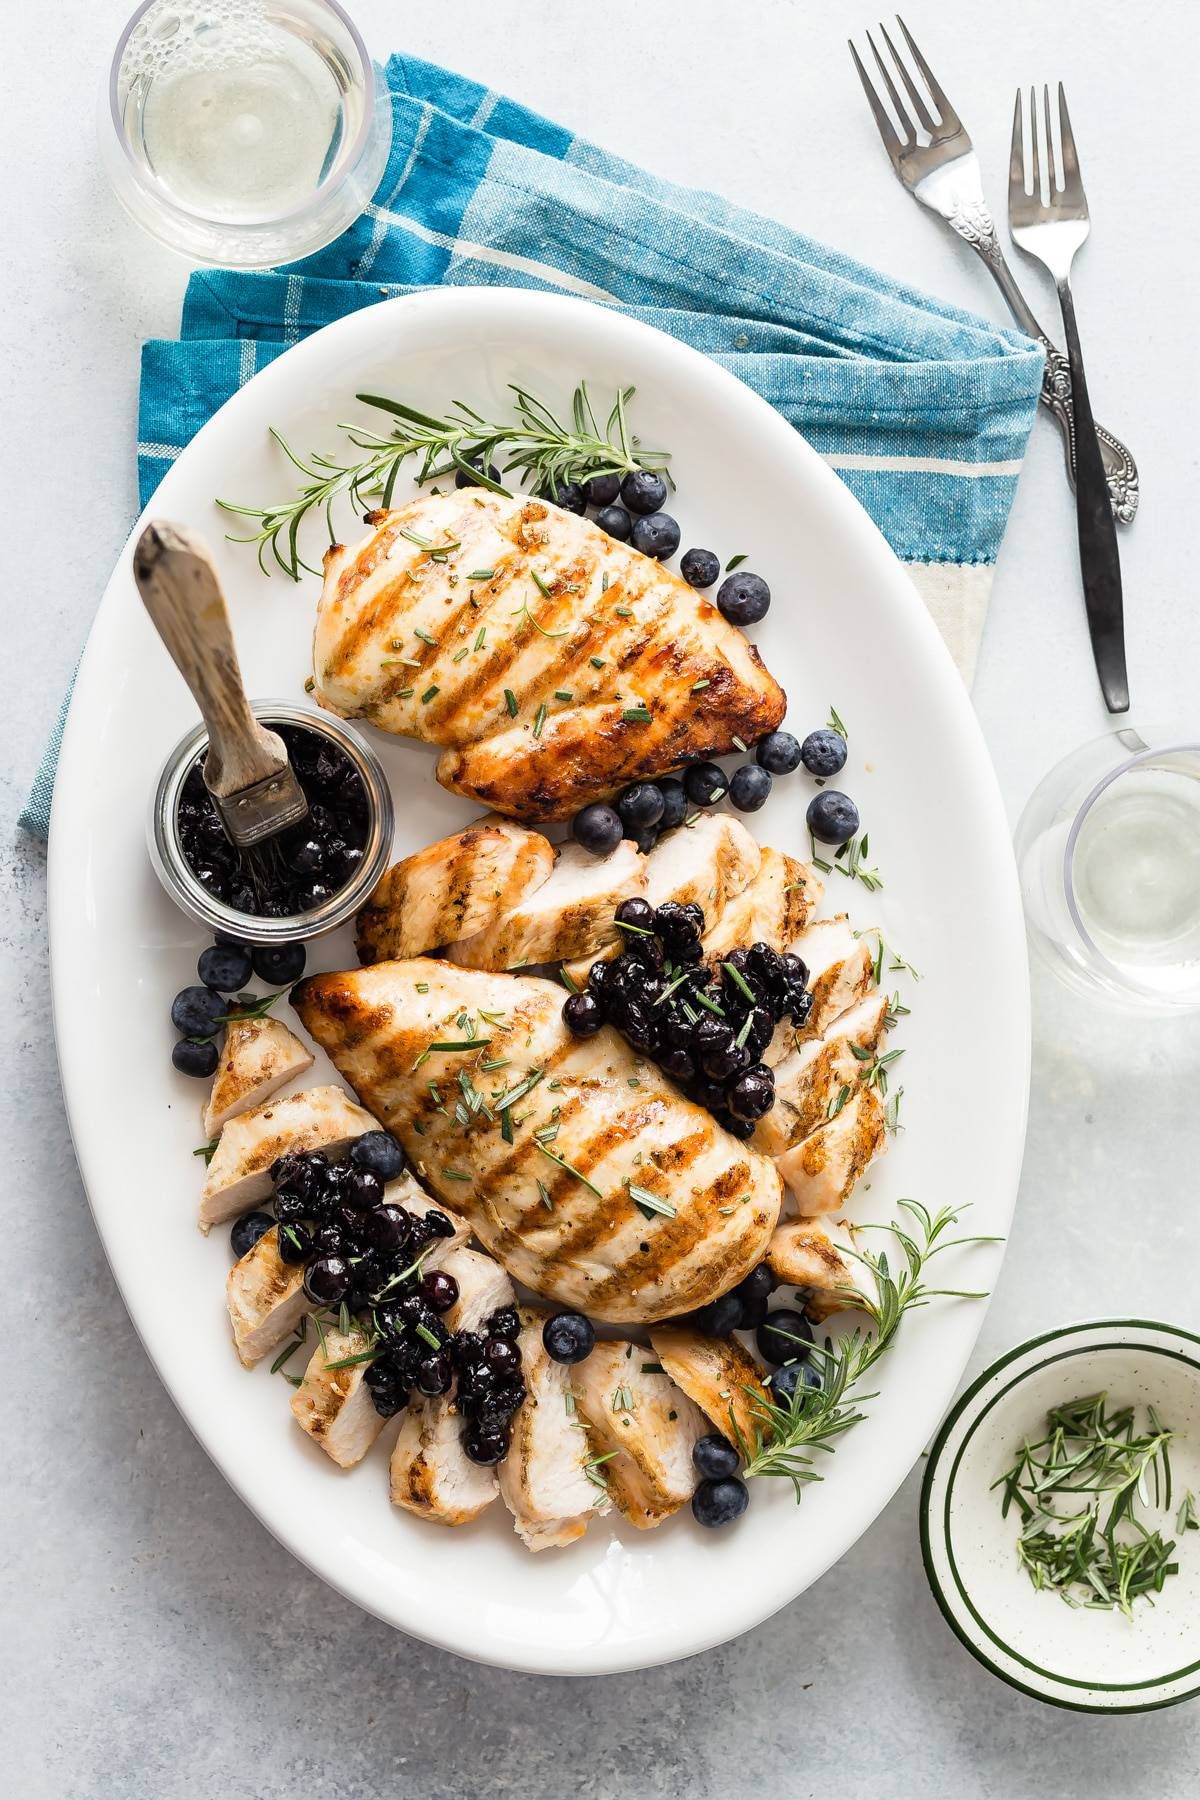 A fantastic savory blueberry relish with rosemary and balsamic vinegar. This is perfect to add on top of juicy grilled chicken breast for a summer meal.